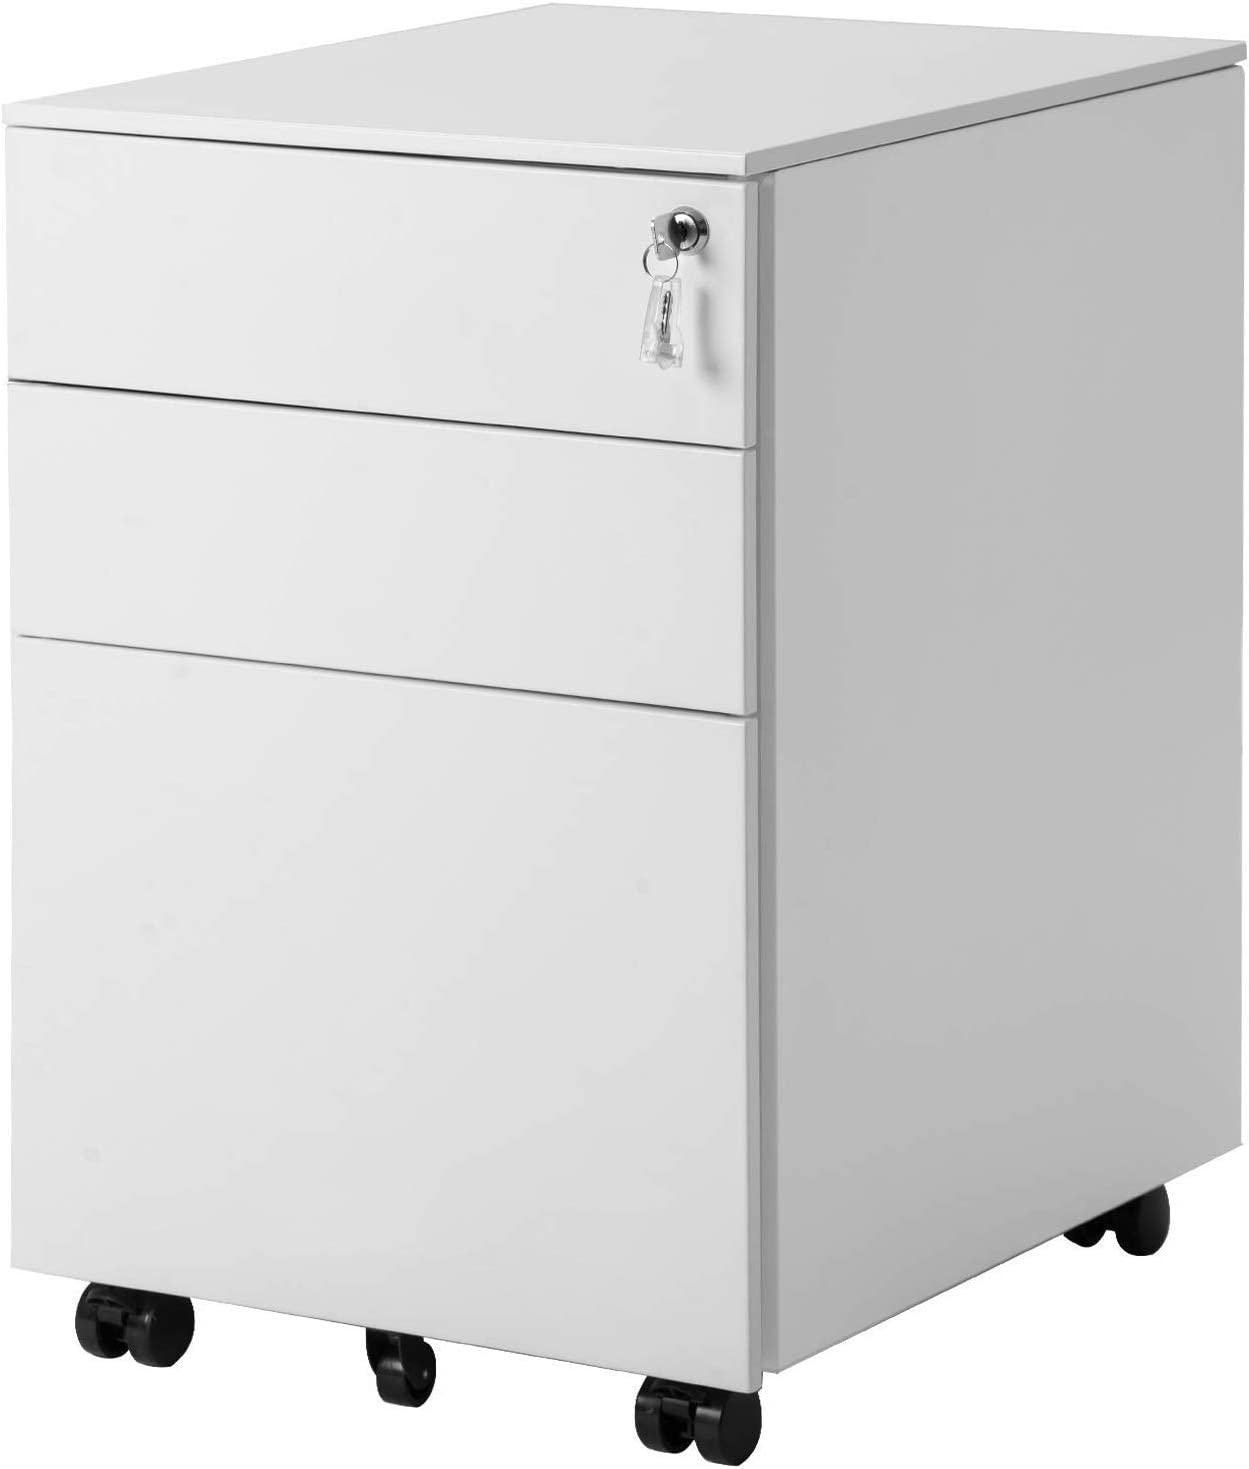 MIERES 3 Drawer Cabinet File Cabinet Mobile Metal Black Cabinet with Drawers with Lock Under Desk Fully Assembled Except for 5 Castors